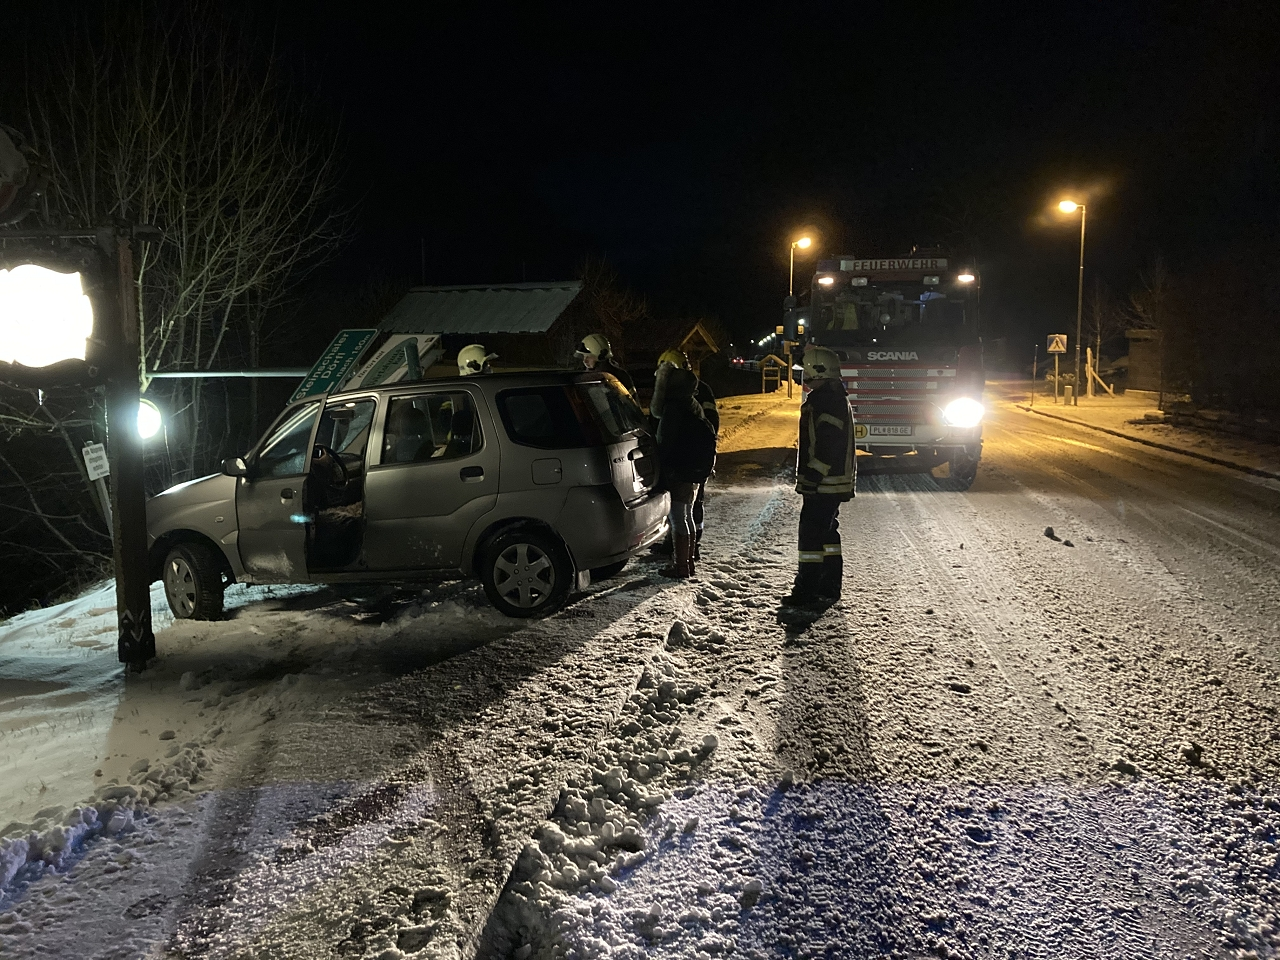 You are browsing images from the article: 14.01.2021: Fahrzeugbergung im Ortsbereich